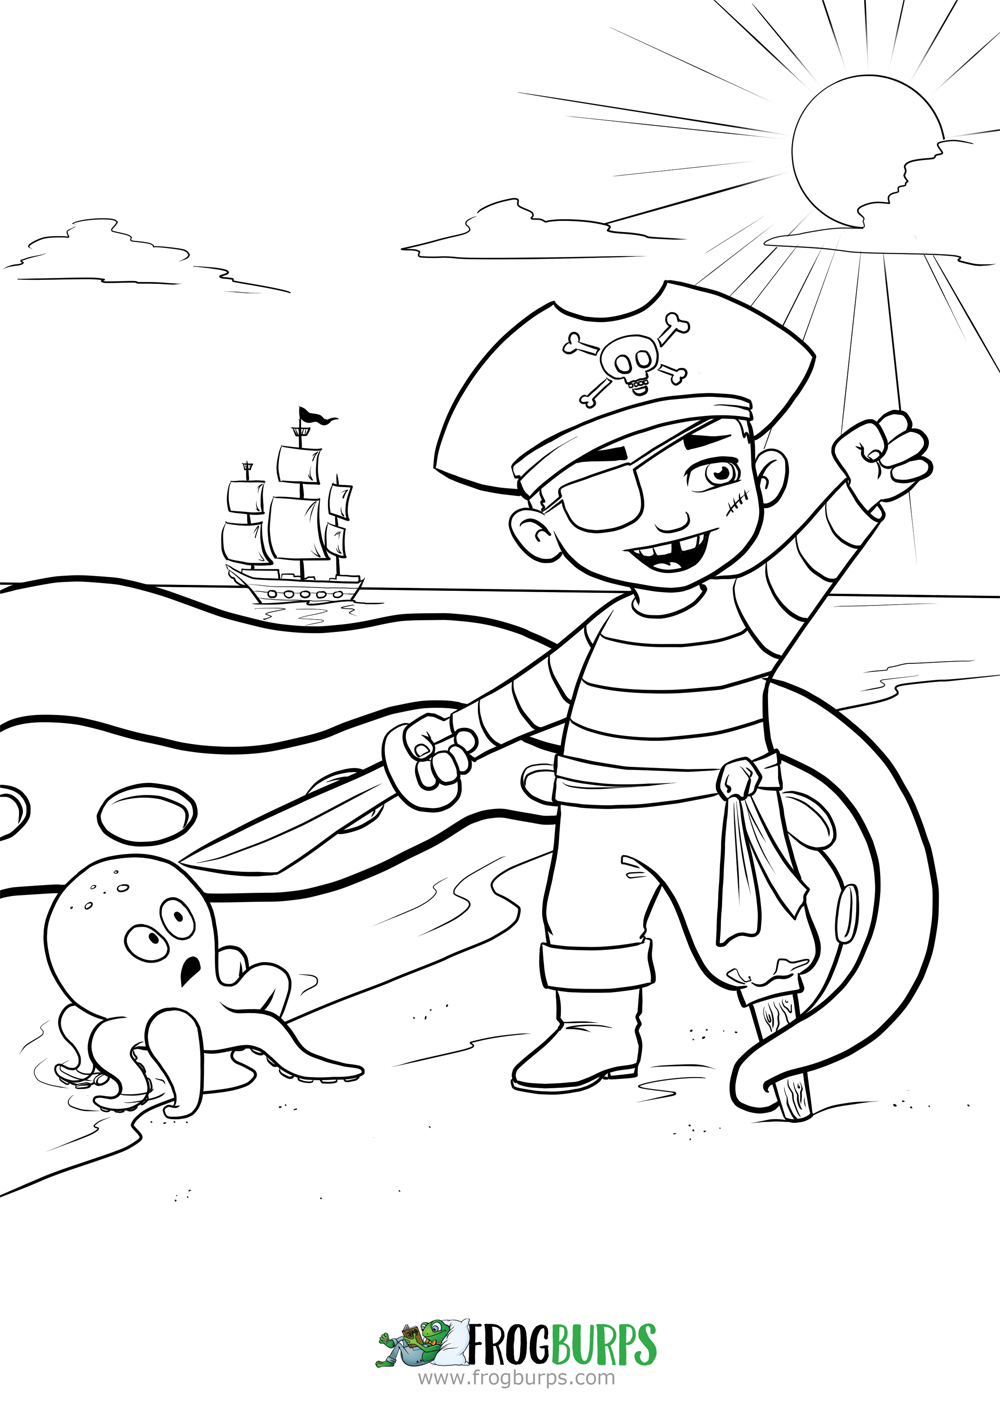 Talk Like a Pirate Day 2015 | Coloring Page